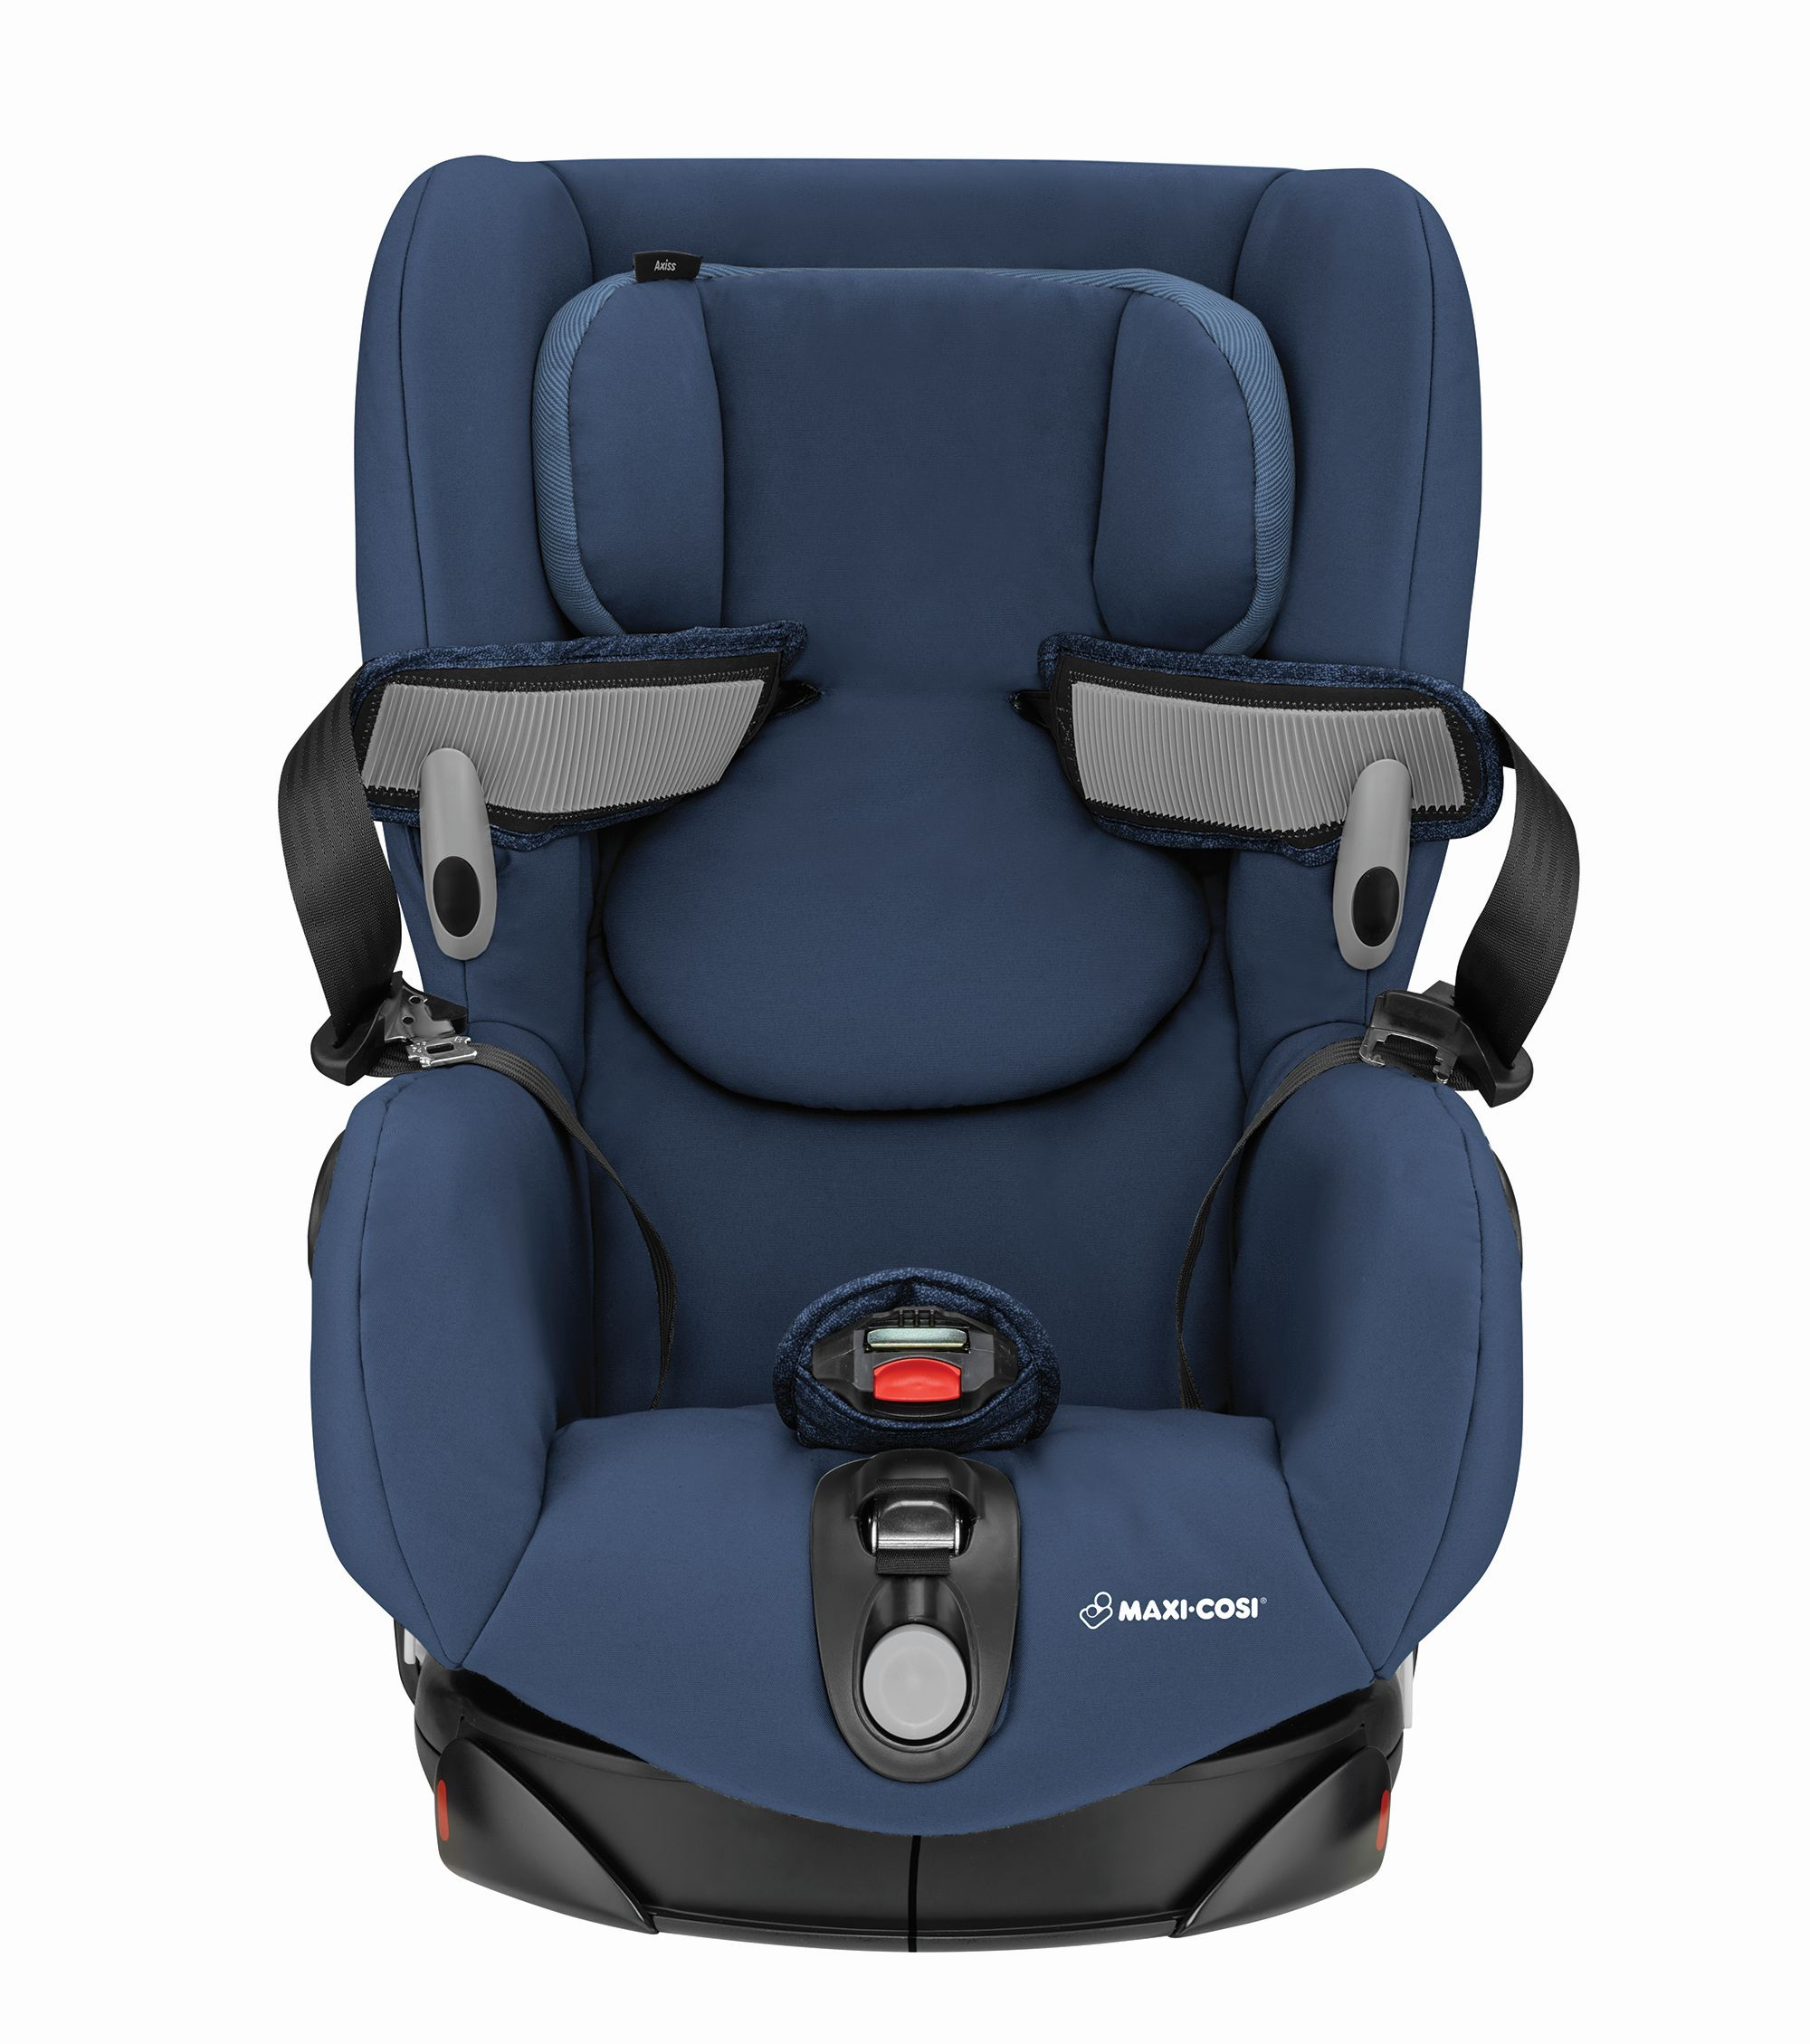 Maxi cosi child car seat axiss buy at kidsroom car seats for Maxi cosi housse